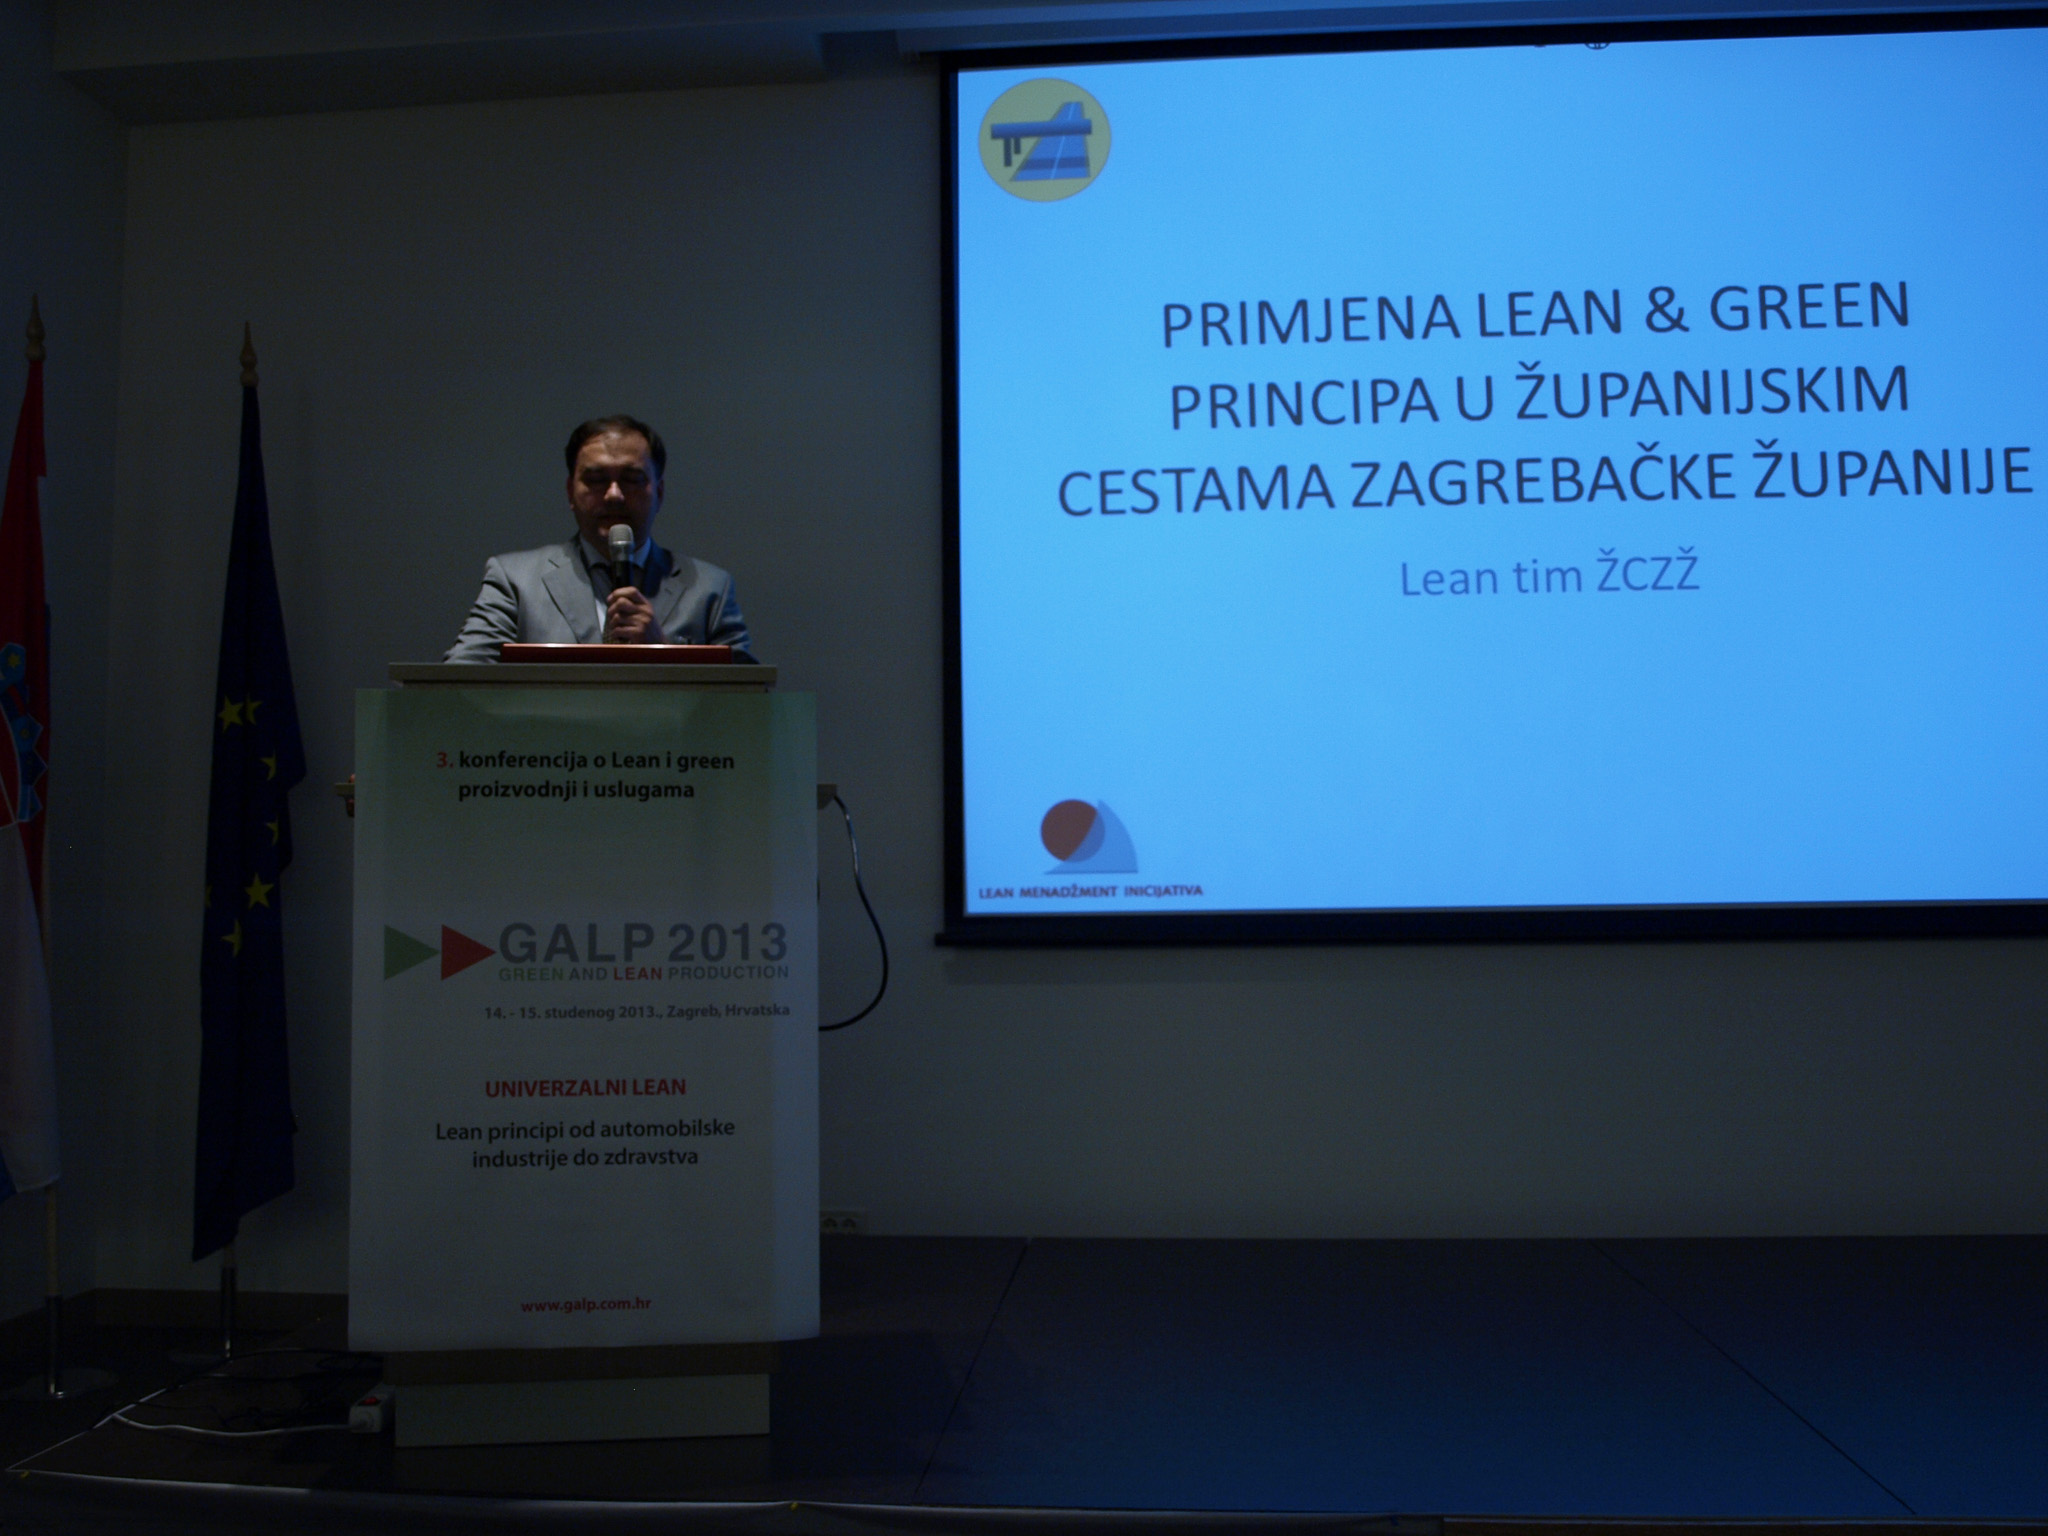 Green and Lean Production (GALP) 2013